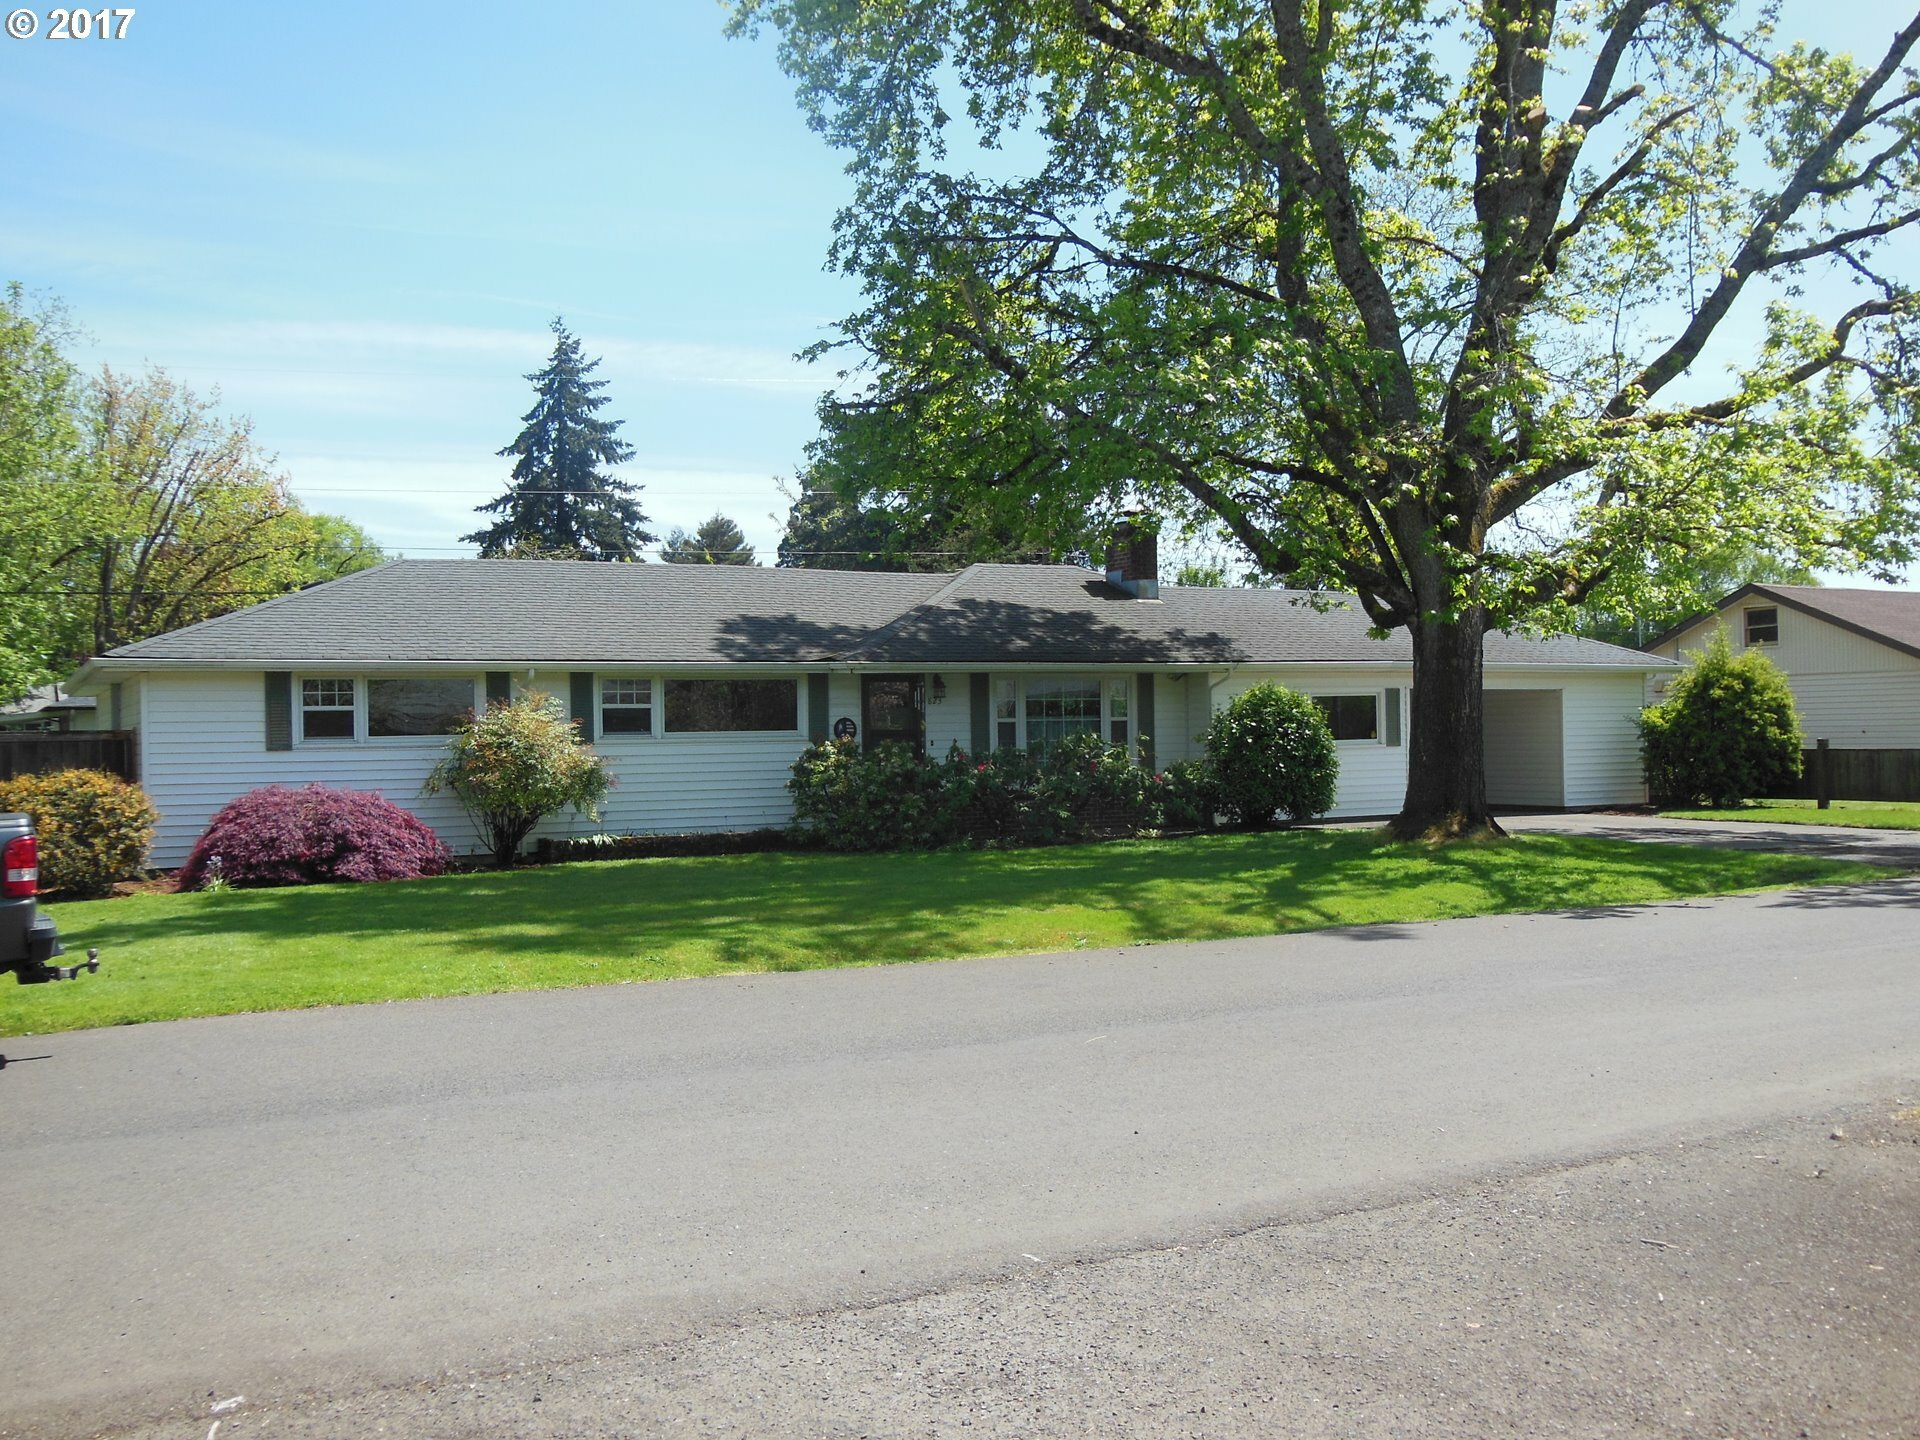 823 Leigh St, Eugene, OR - USA (photo 1)